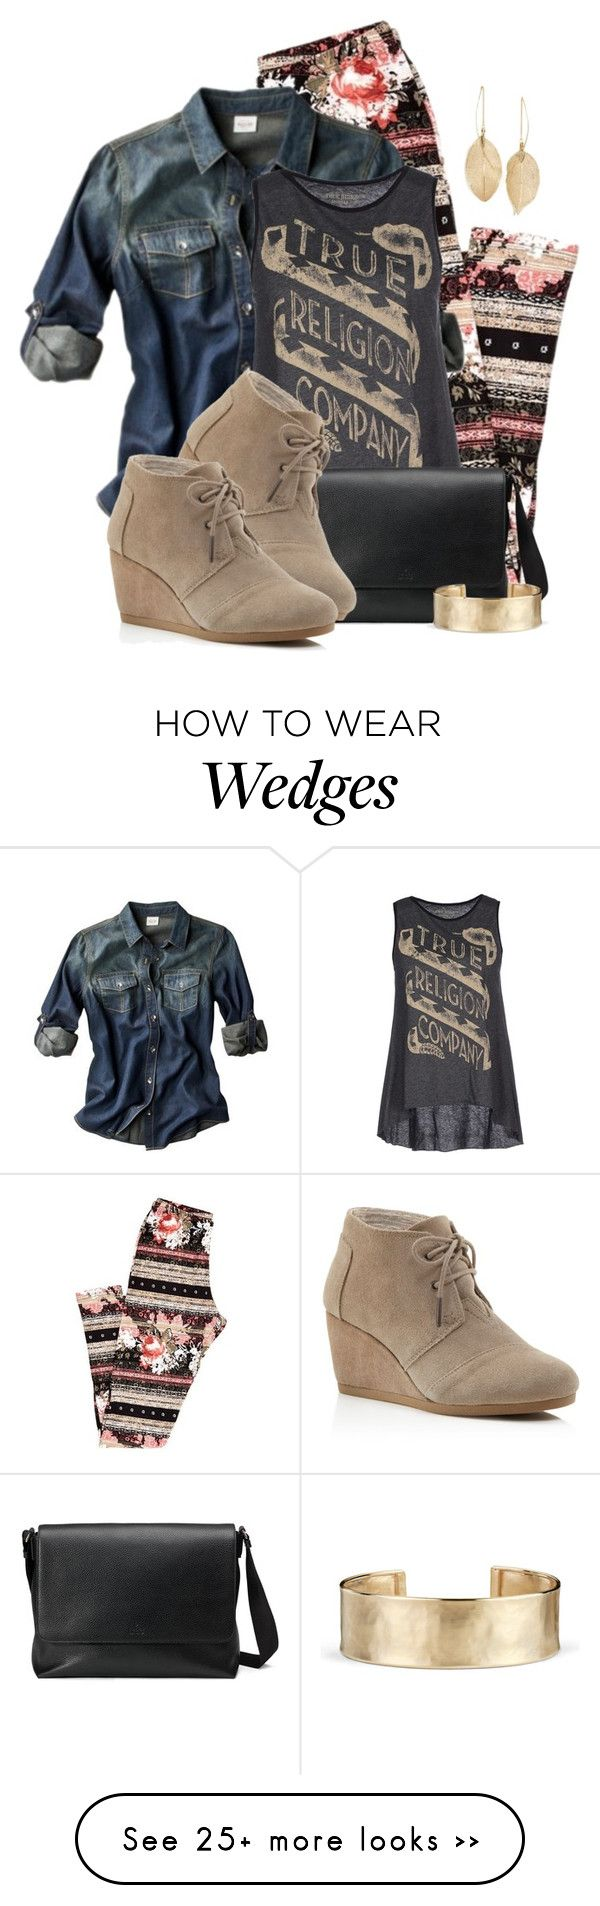 """TOMS Wedge Booties & Leggings"" by colierollers on Polyvore featuring Mossimo, True Religion, Gucci, TOMS, Lulu*s and Blue Nile"